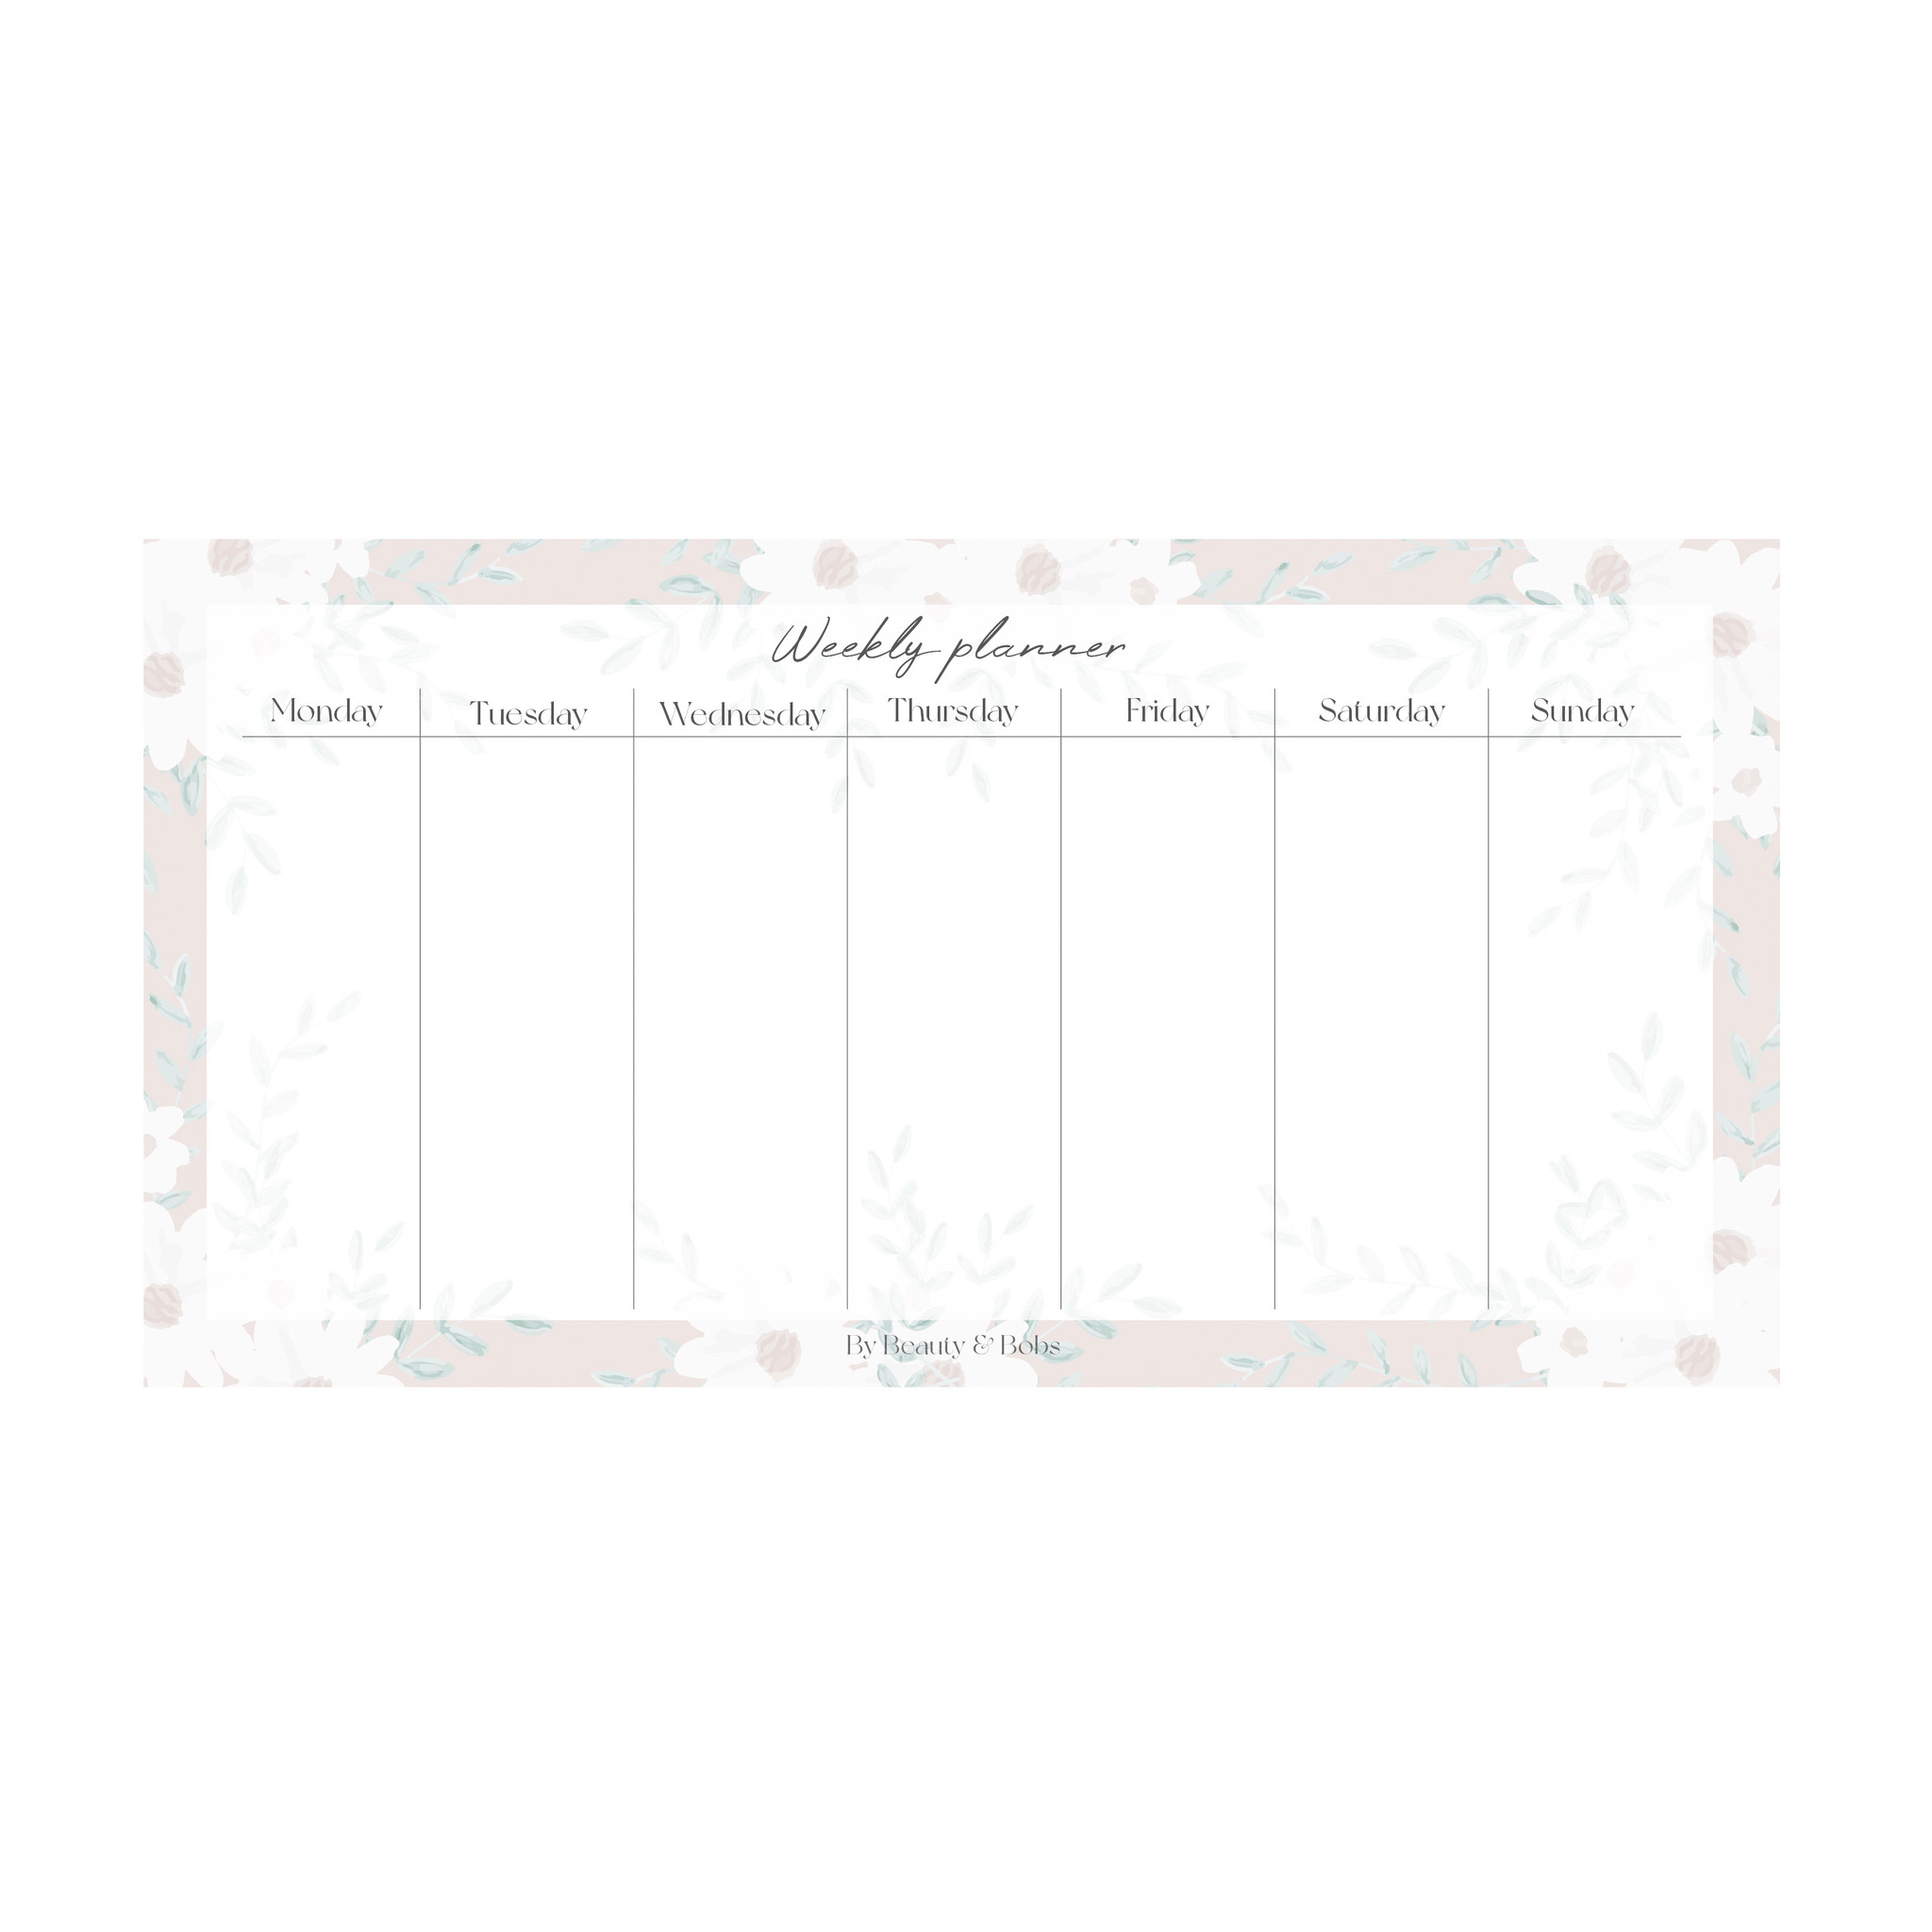 SMALL WEEKLY PLANNER (21x10,5cm)